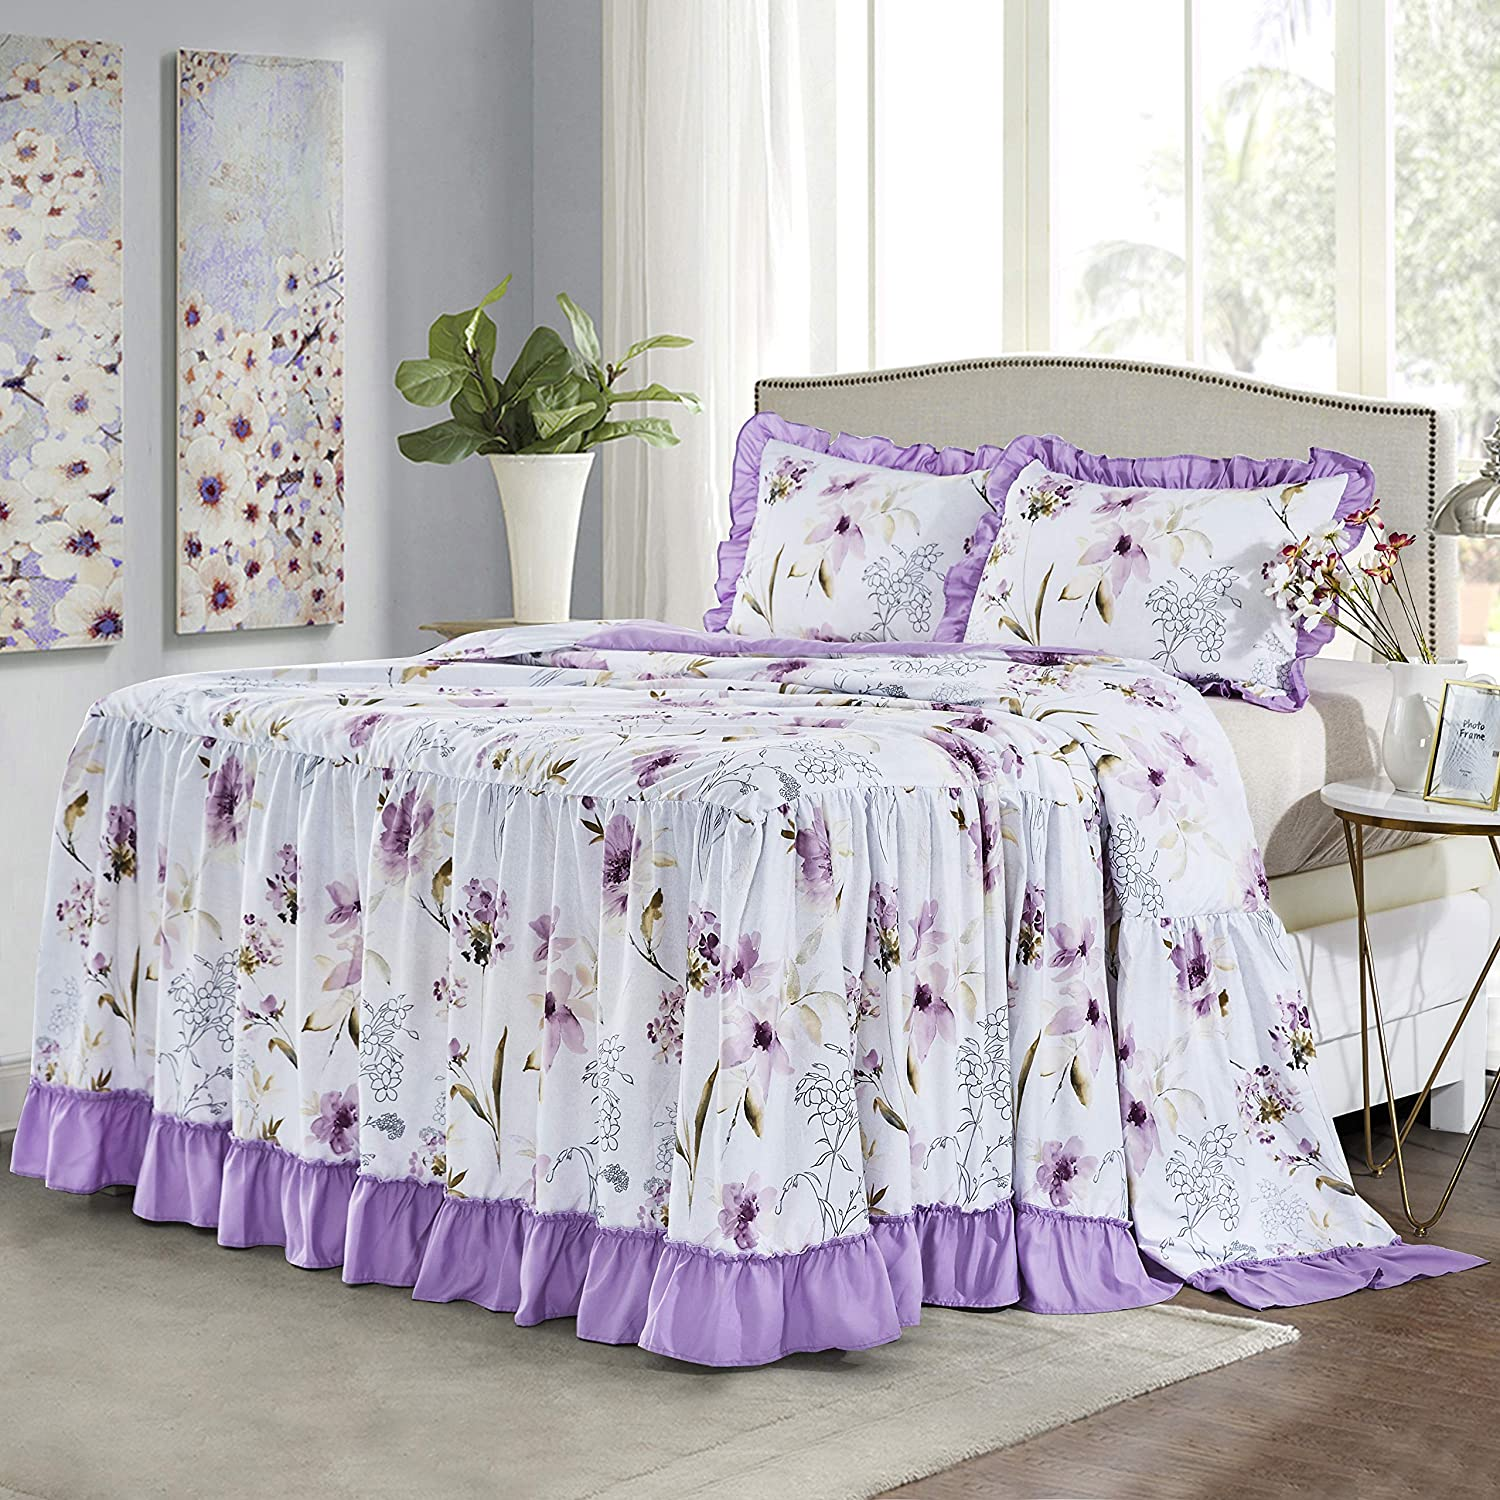 Luxurious Quilted Top Full Quilted Pink Roses /& Butterflies Ruffled Bedspread Twin King Sizes 3 Tiers of Coordinating Ruffles Machine Washable White Queen Polyester